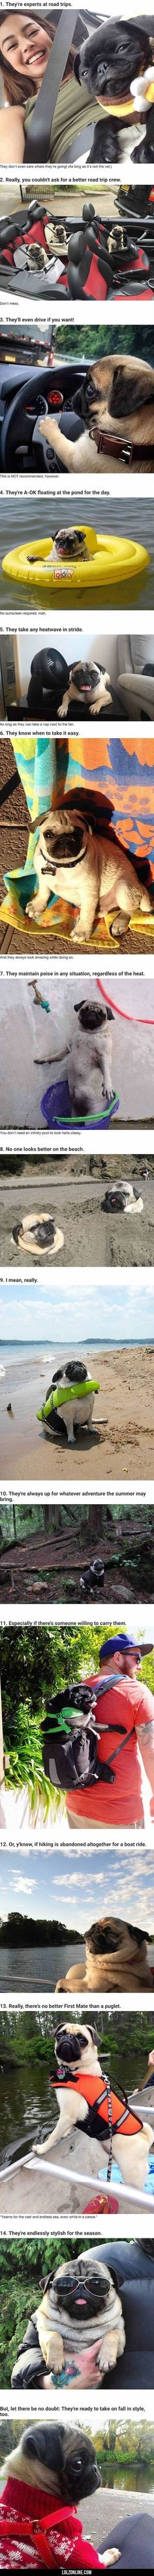 14 Reasons Pugs Are The Ultimate Experts In Summer Living#funny #lol #lolzonline